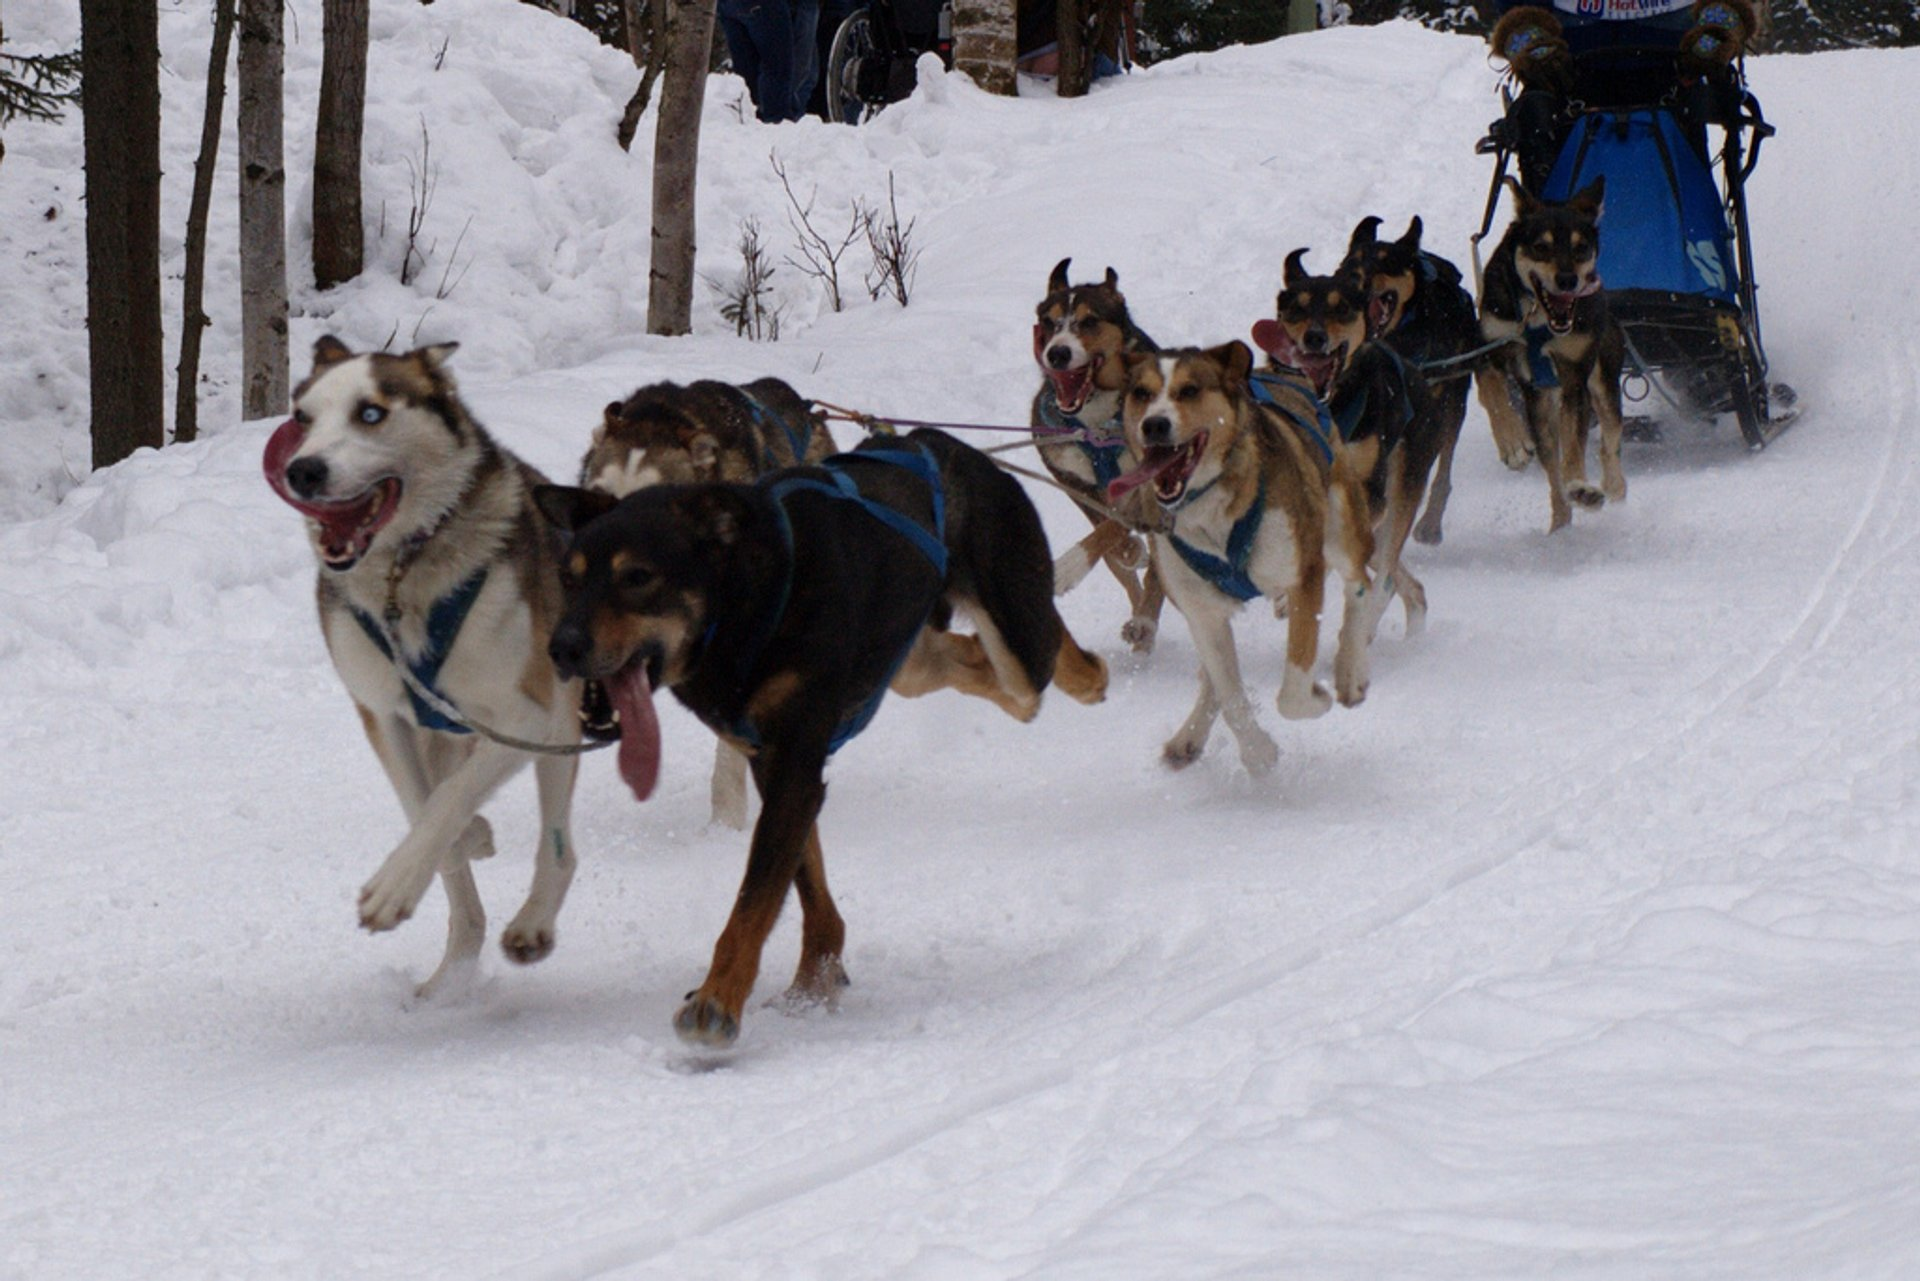 Sled dog race 2020